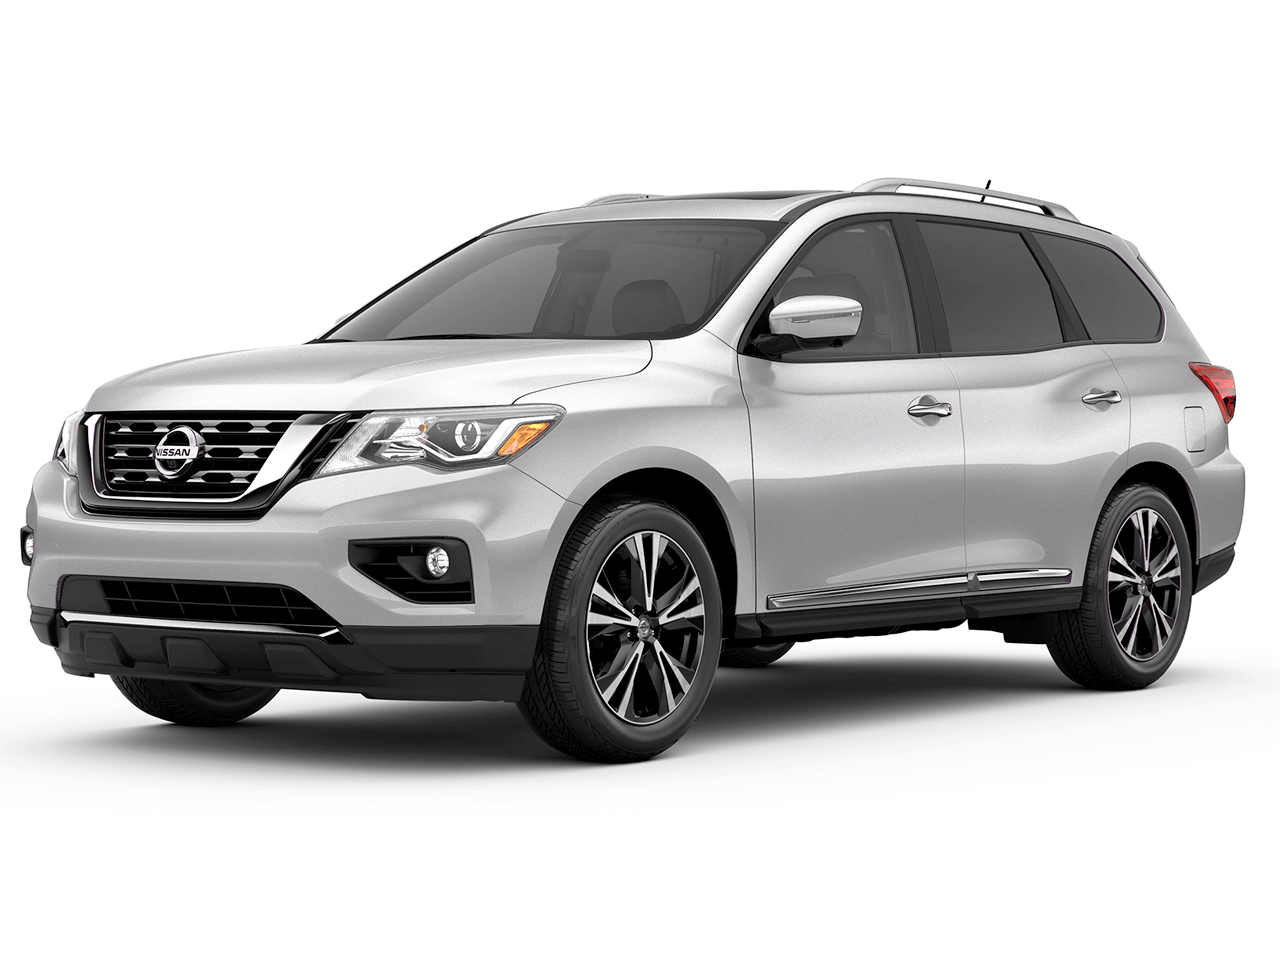 Nissan Pathfinder Rental Car Downey, CA